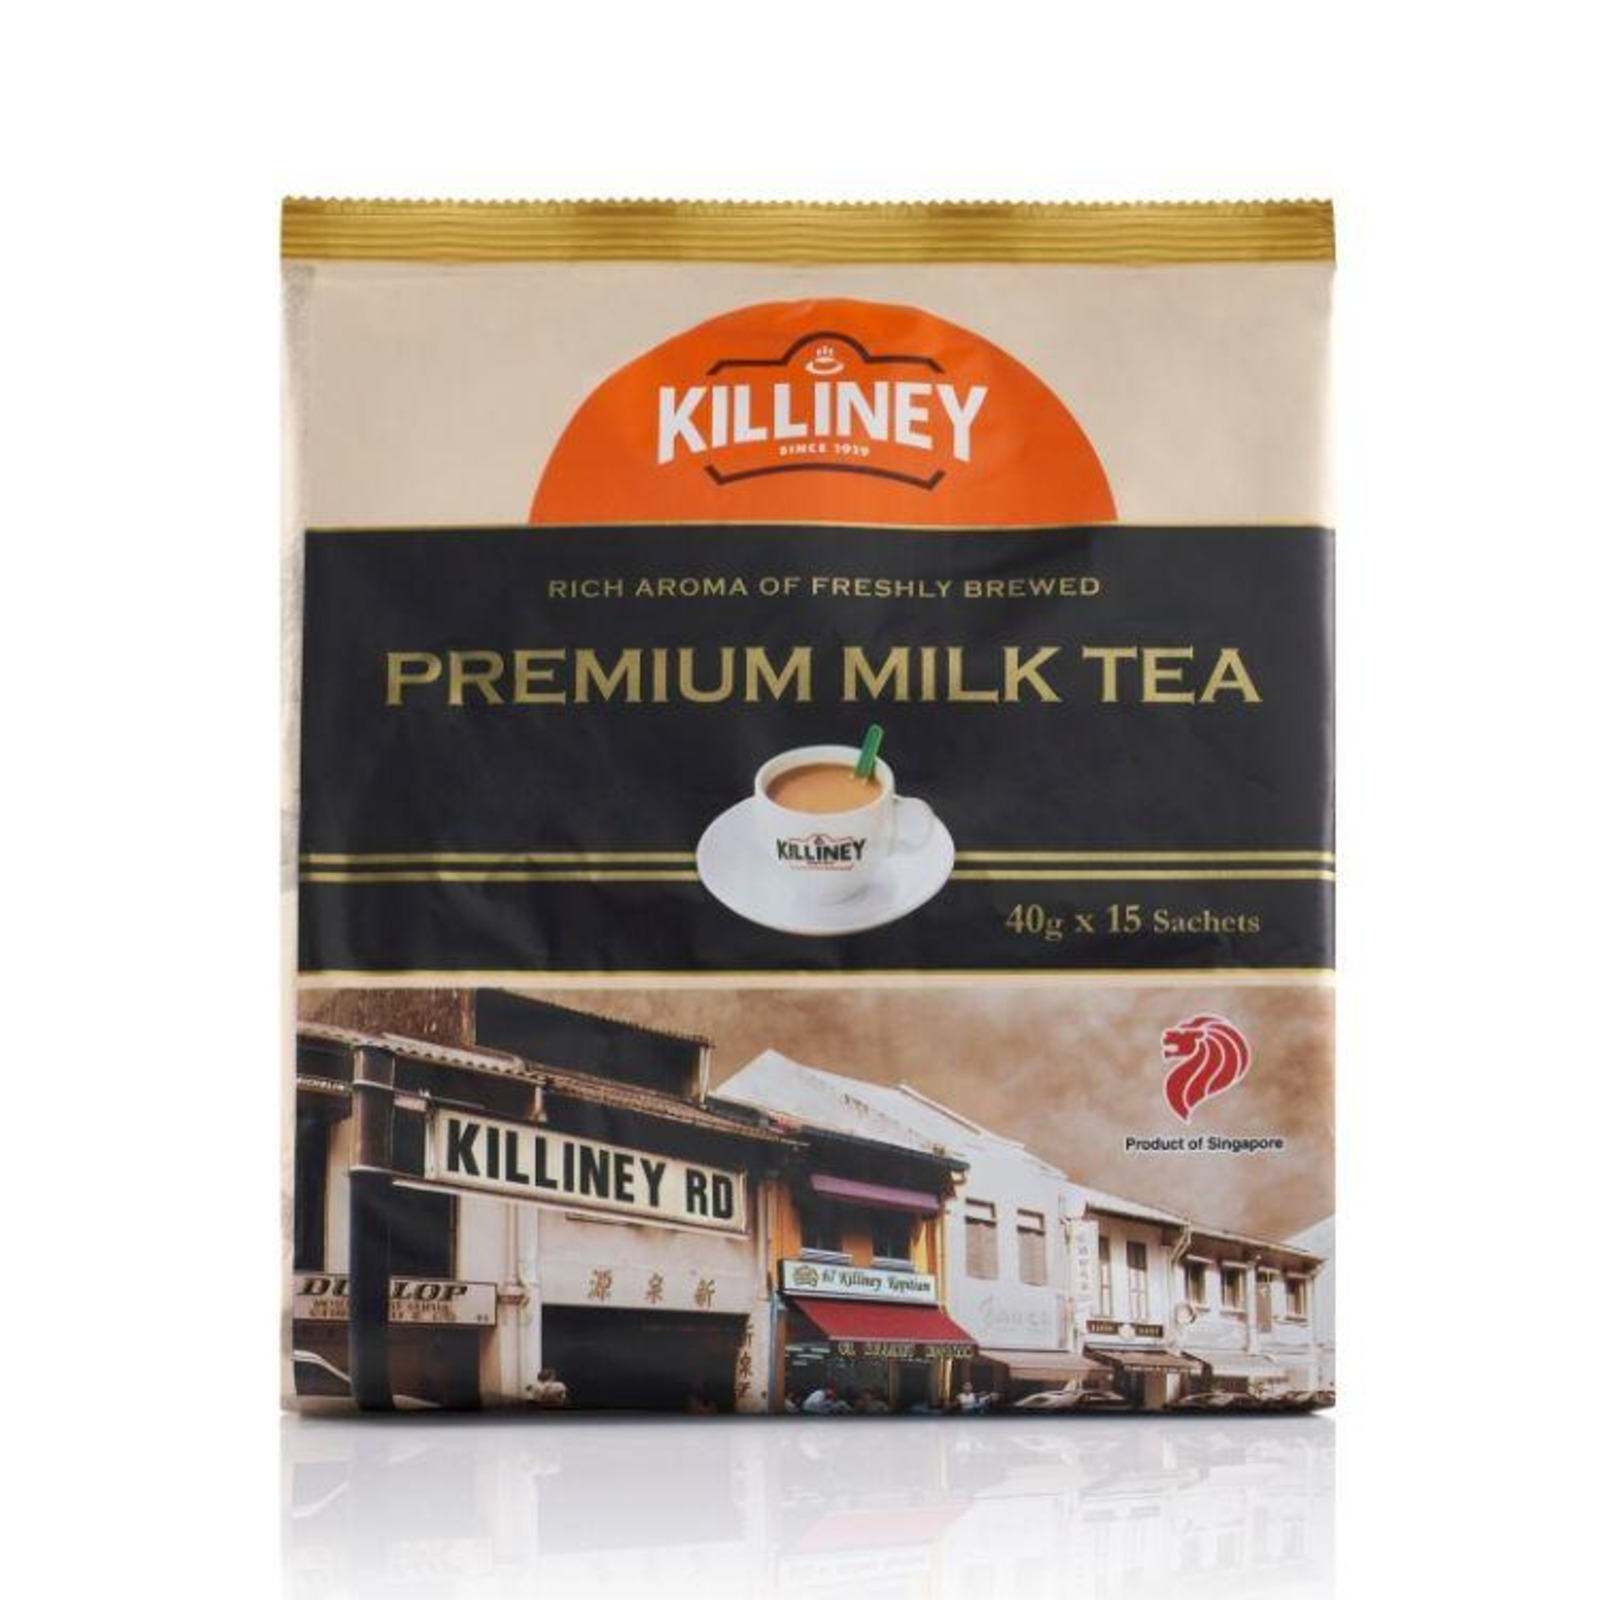 Killiney Premium Milk Tea